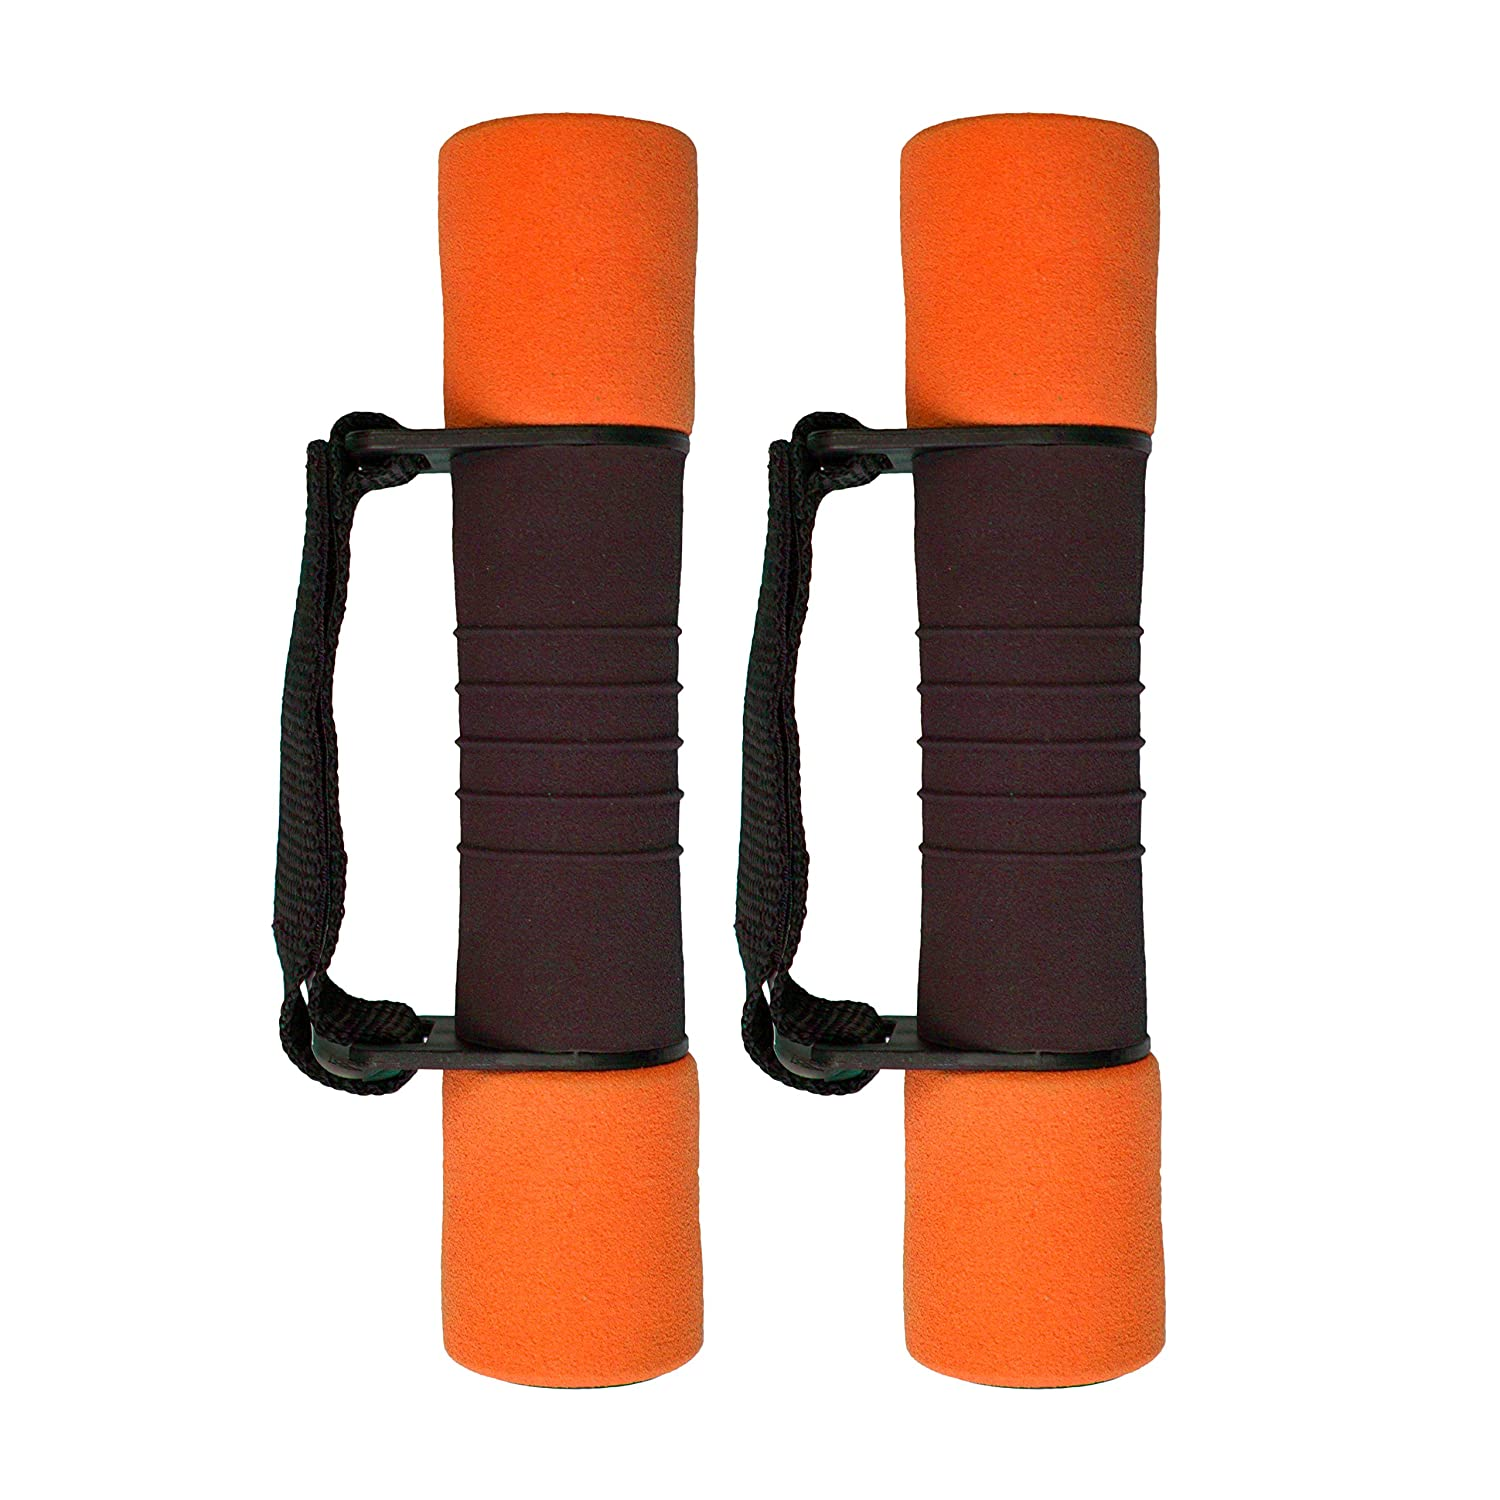 New Image Weights and Dumbbells, ankle weights, wrist weights & weighted vest, 1kg – 5kg New Image Dumbbells 2x1kg Orange High Street TV NIWDO